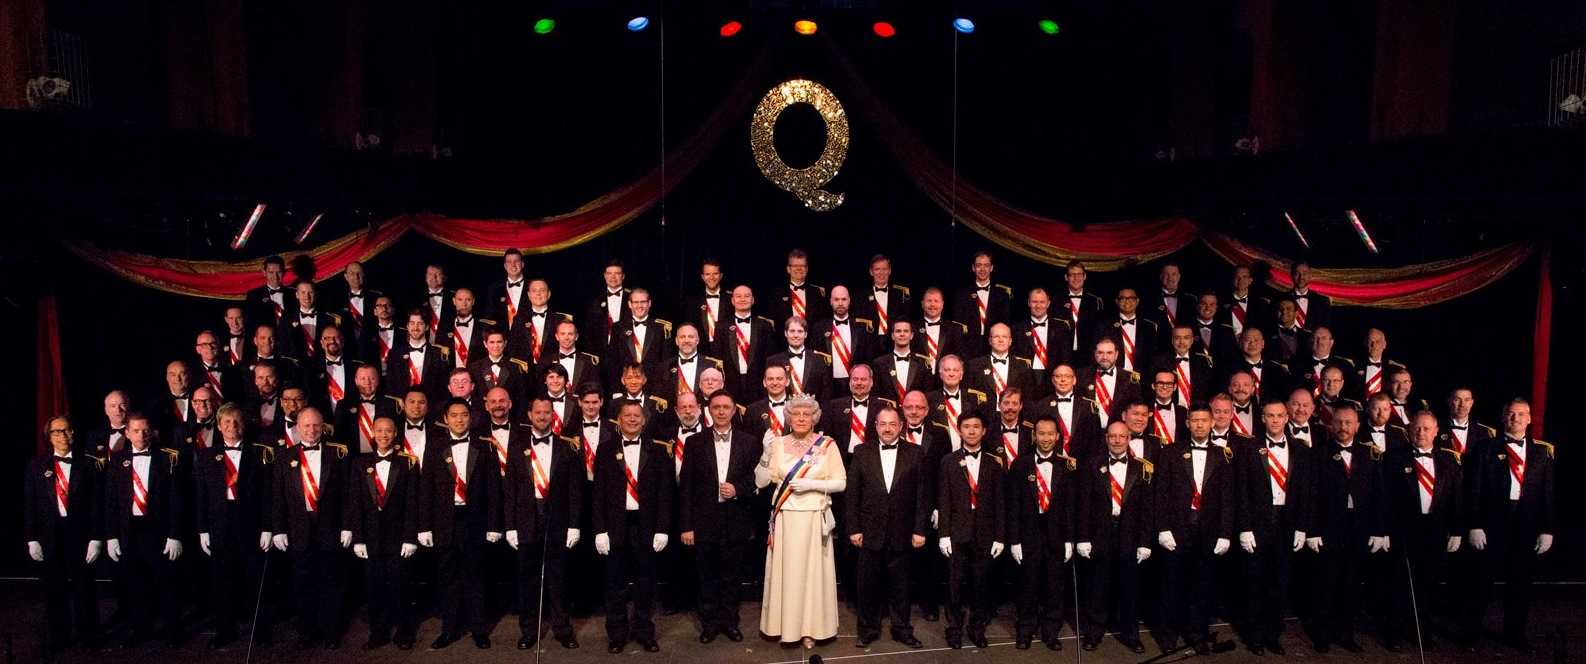 The Vancouver Men's Chorus is one of Canada's premier singing ensembles and ...